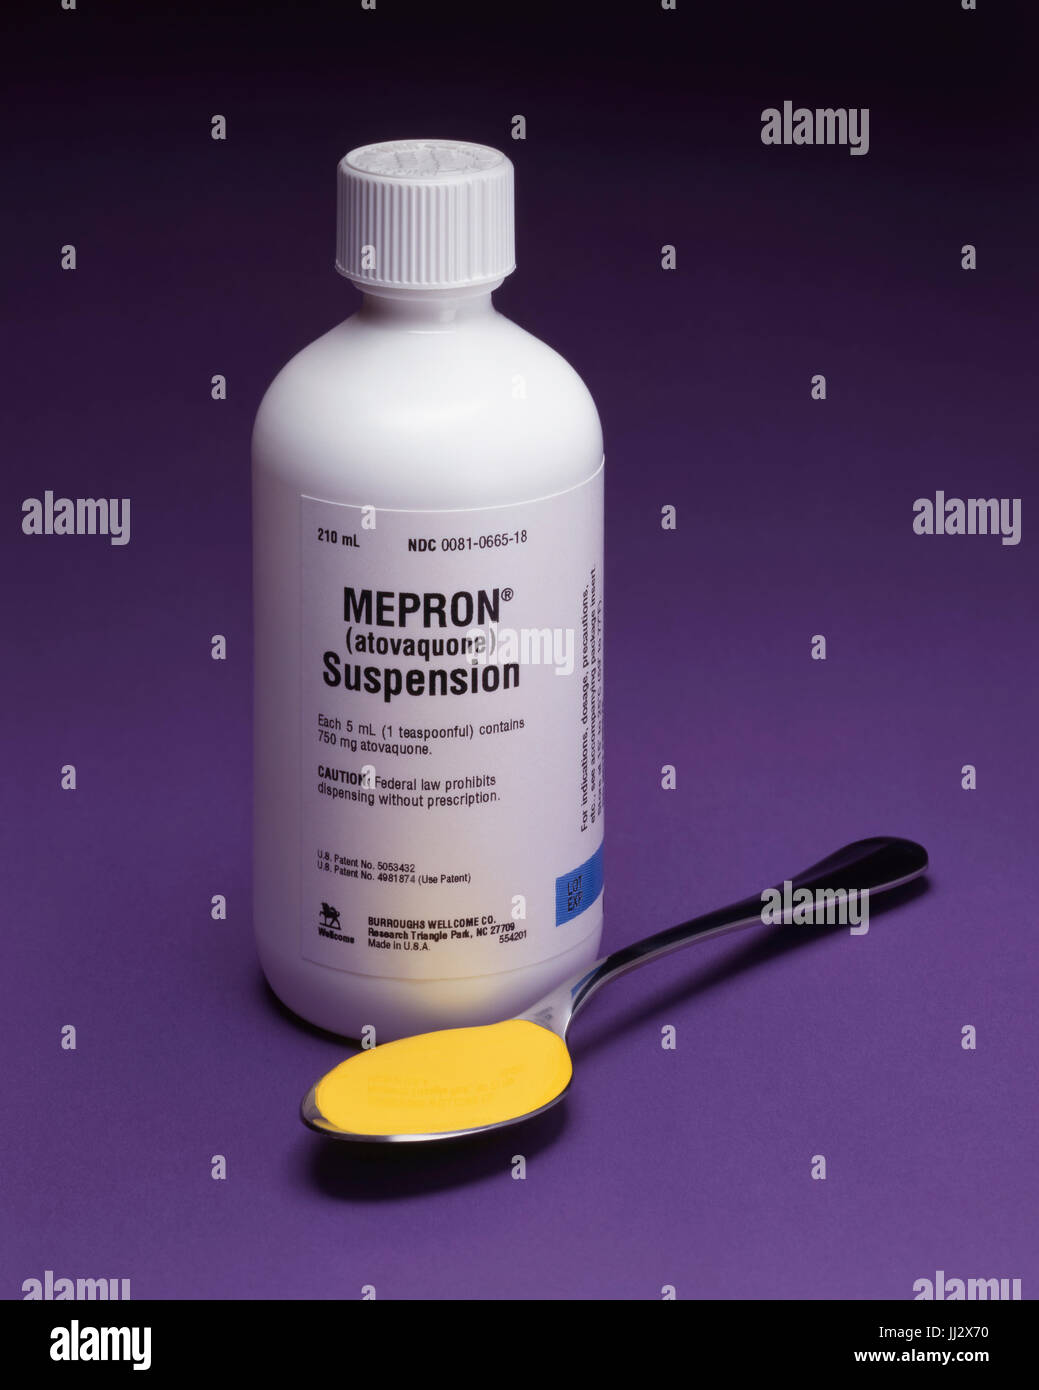 The prescription drug Mepron an antimicrobial - Stock Image